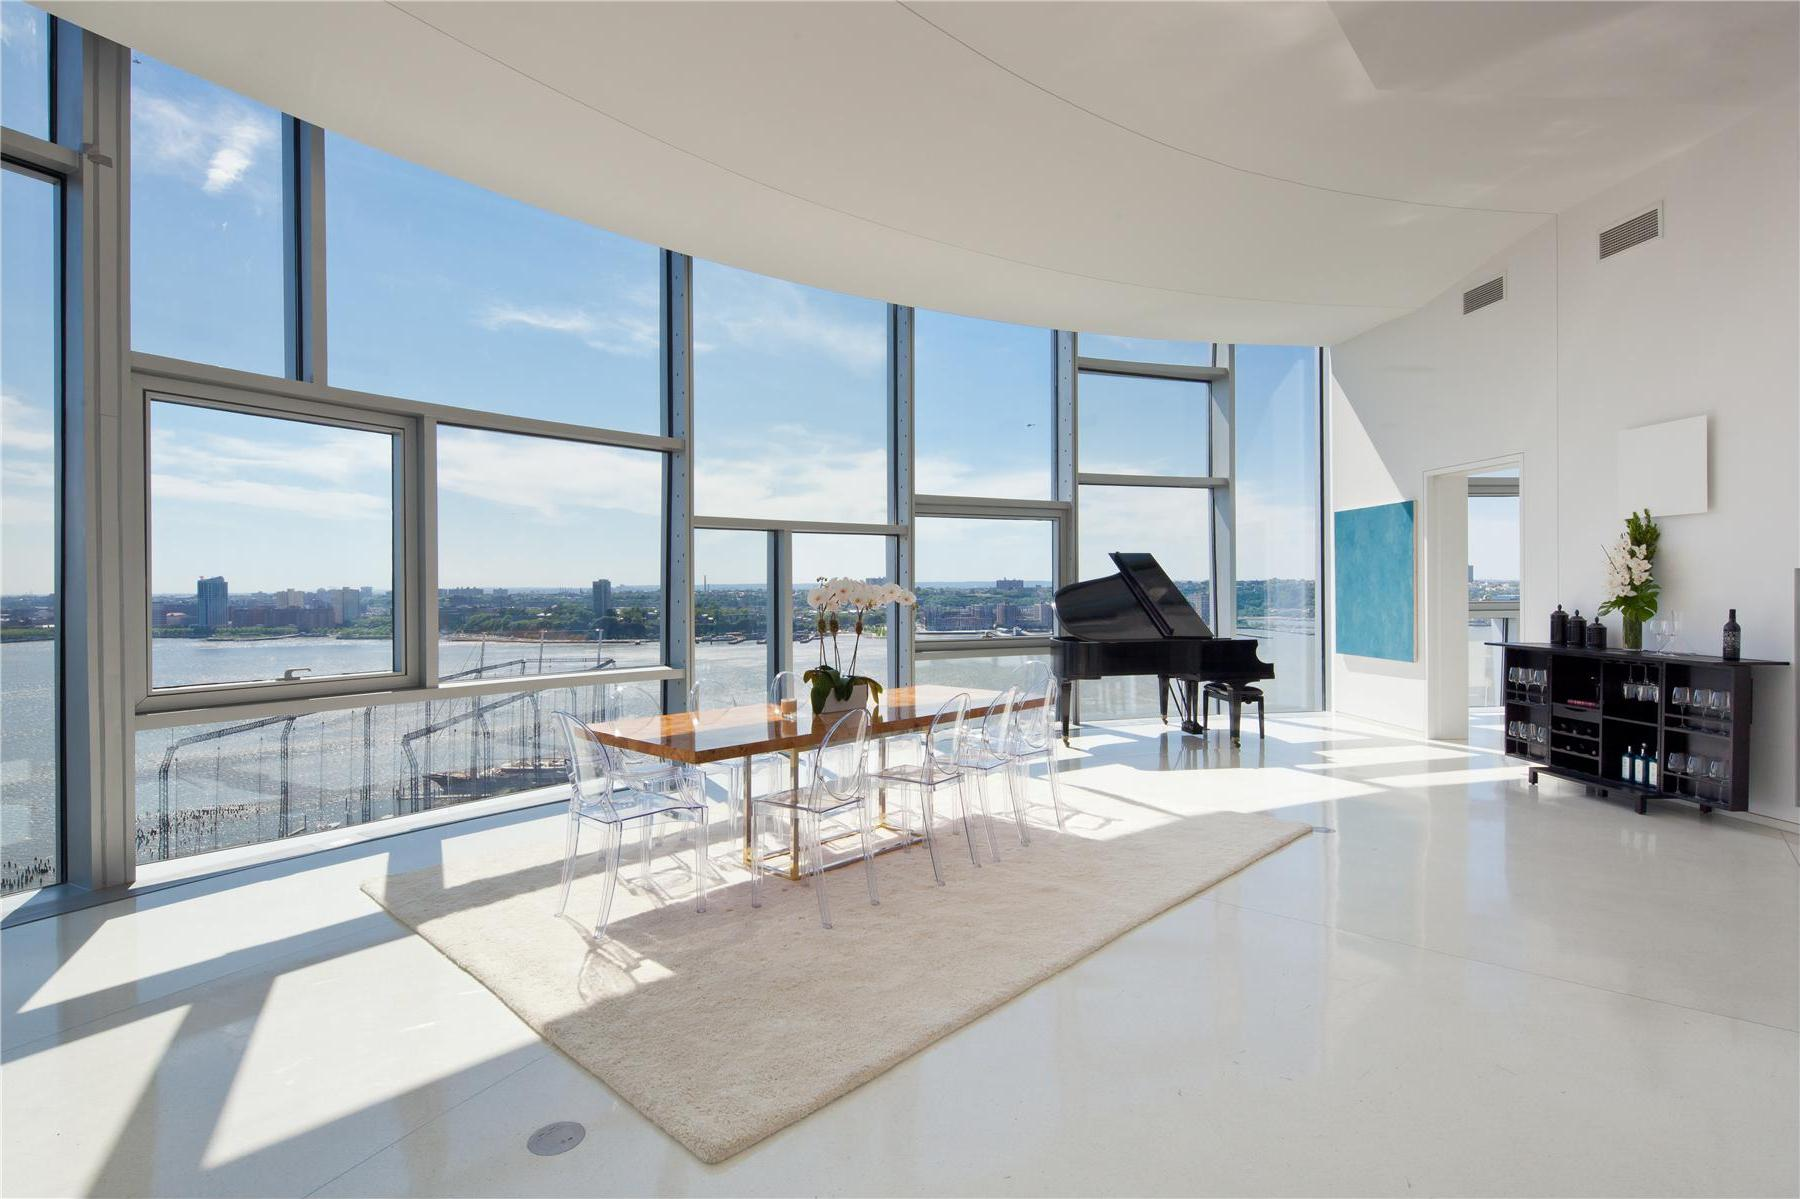 Luxury-100-Eleneth-Avenue-Penthouse-in-Manhattan-04